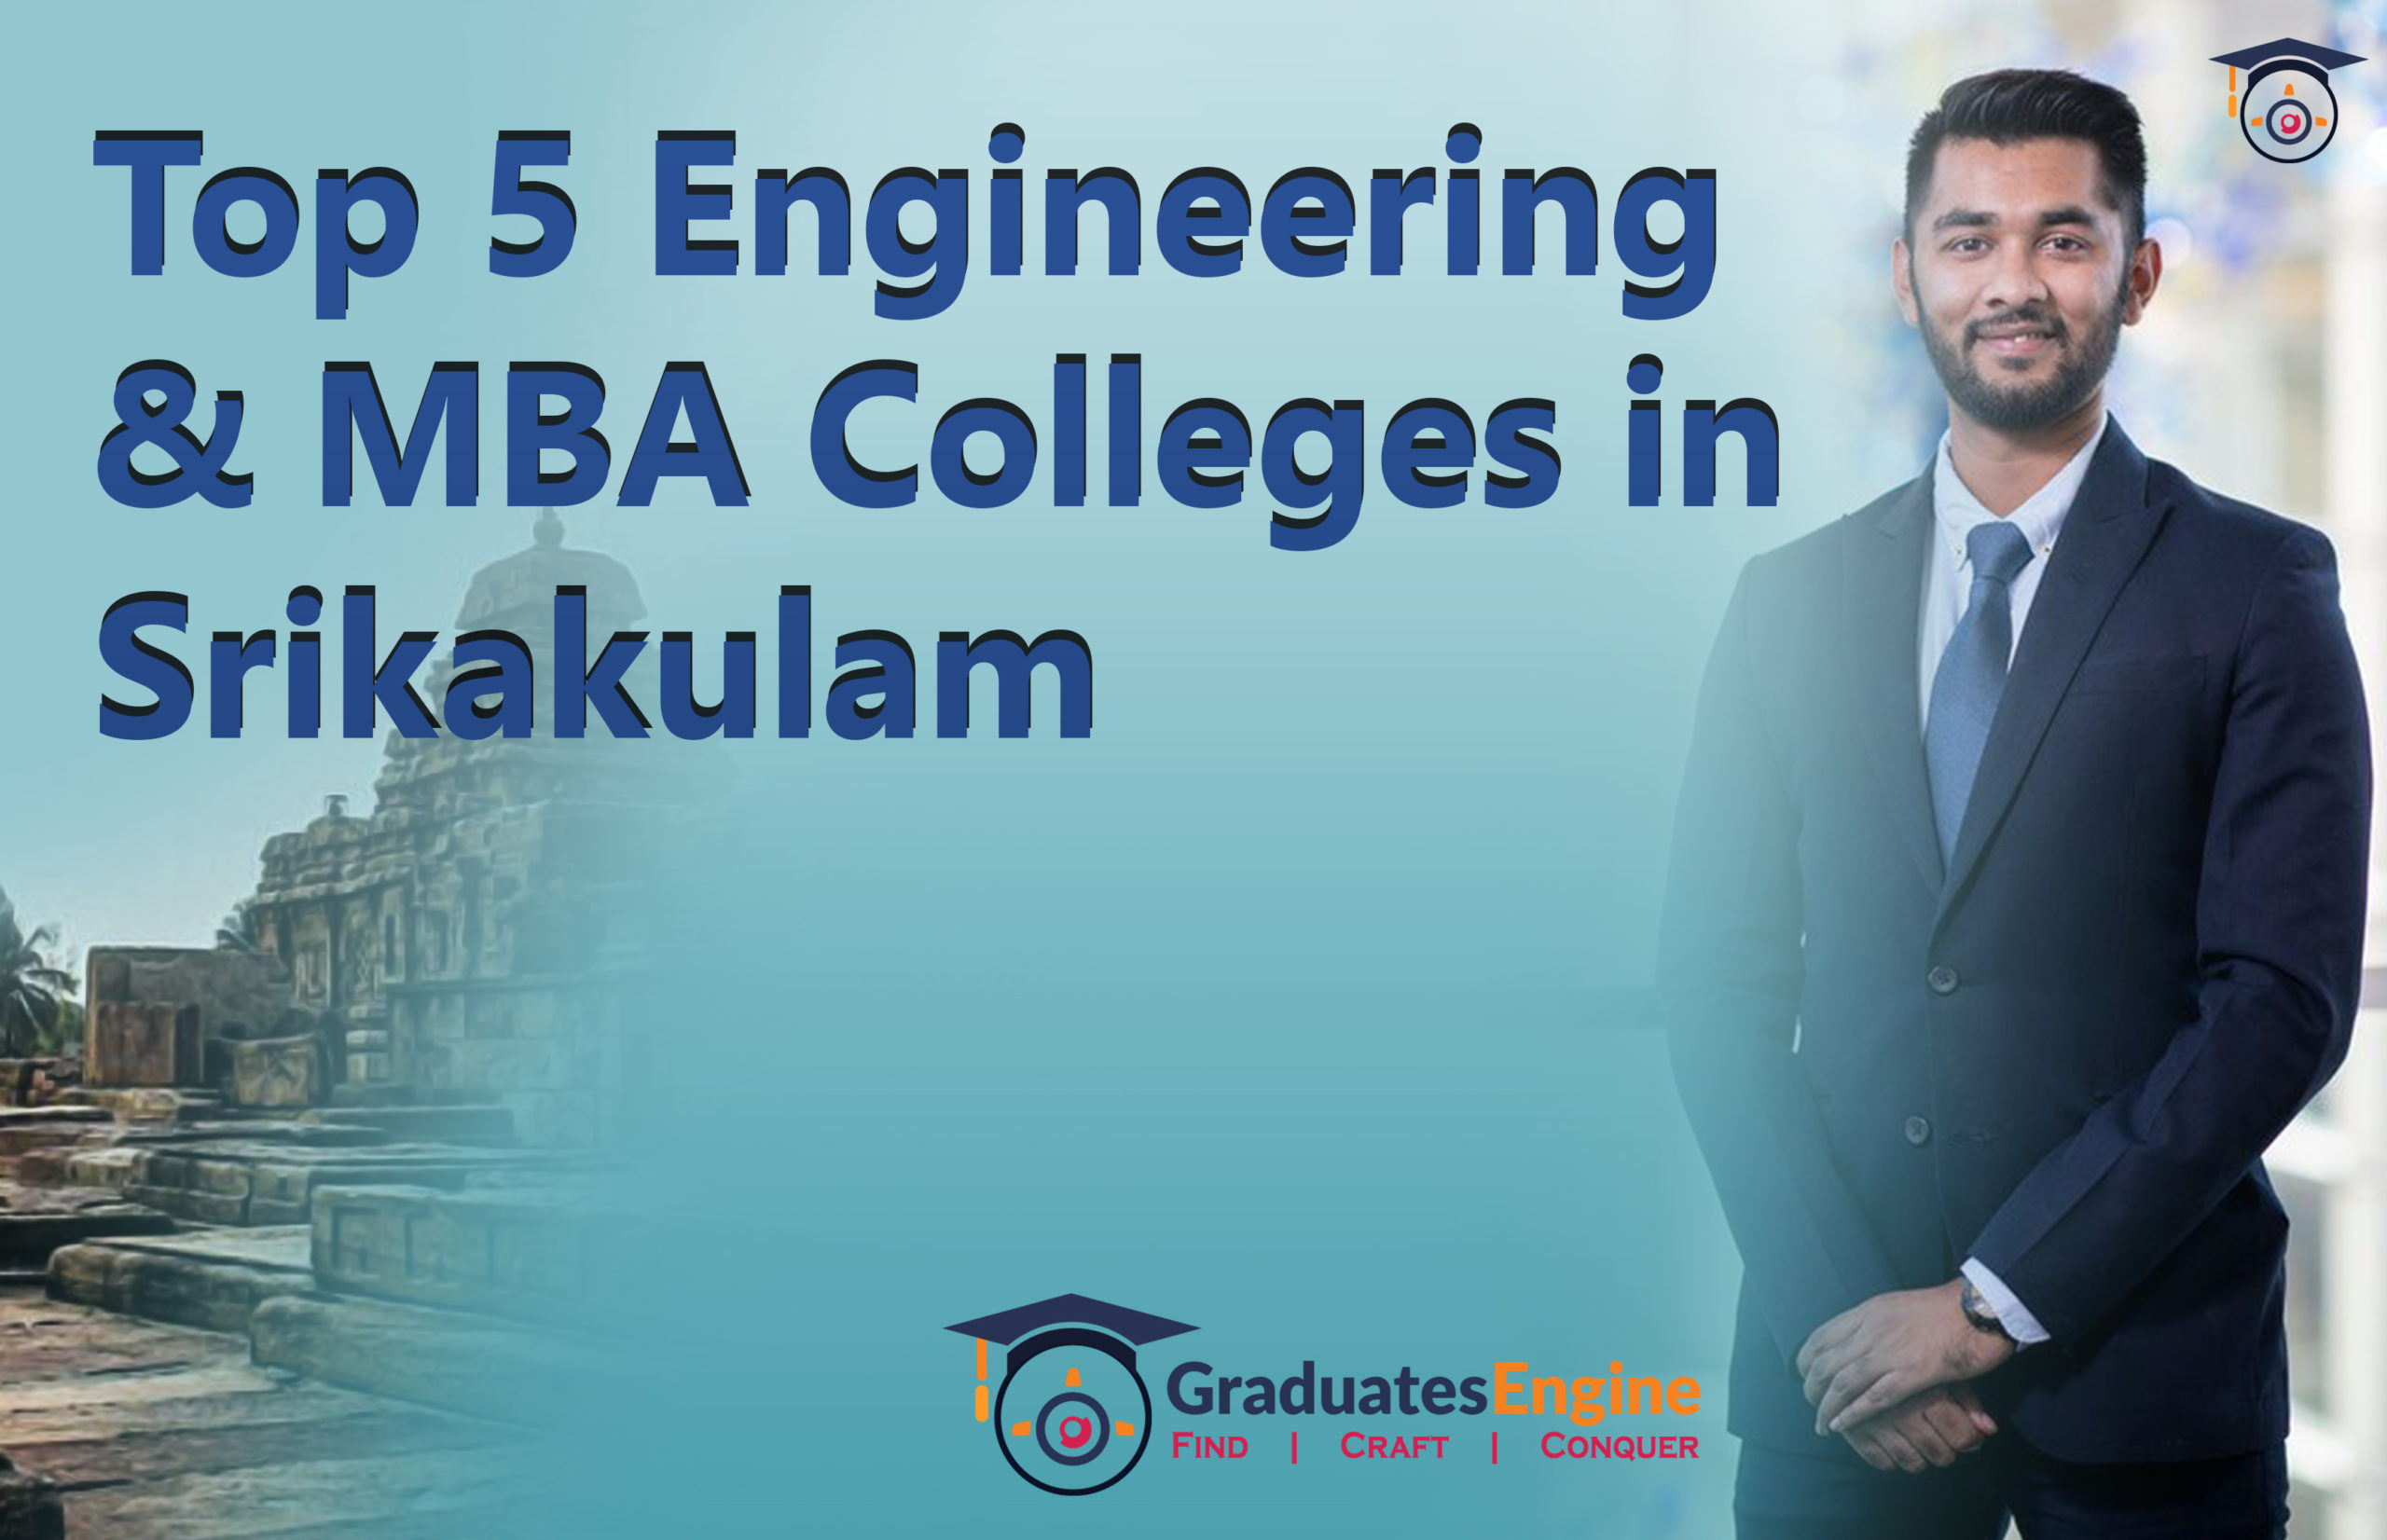 Top 5 Engineering and MBA Colleges in Srikakulam